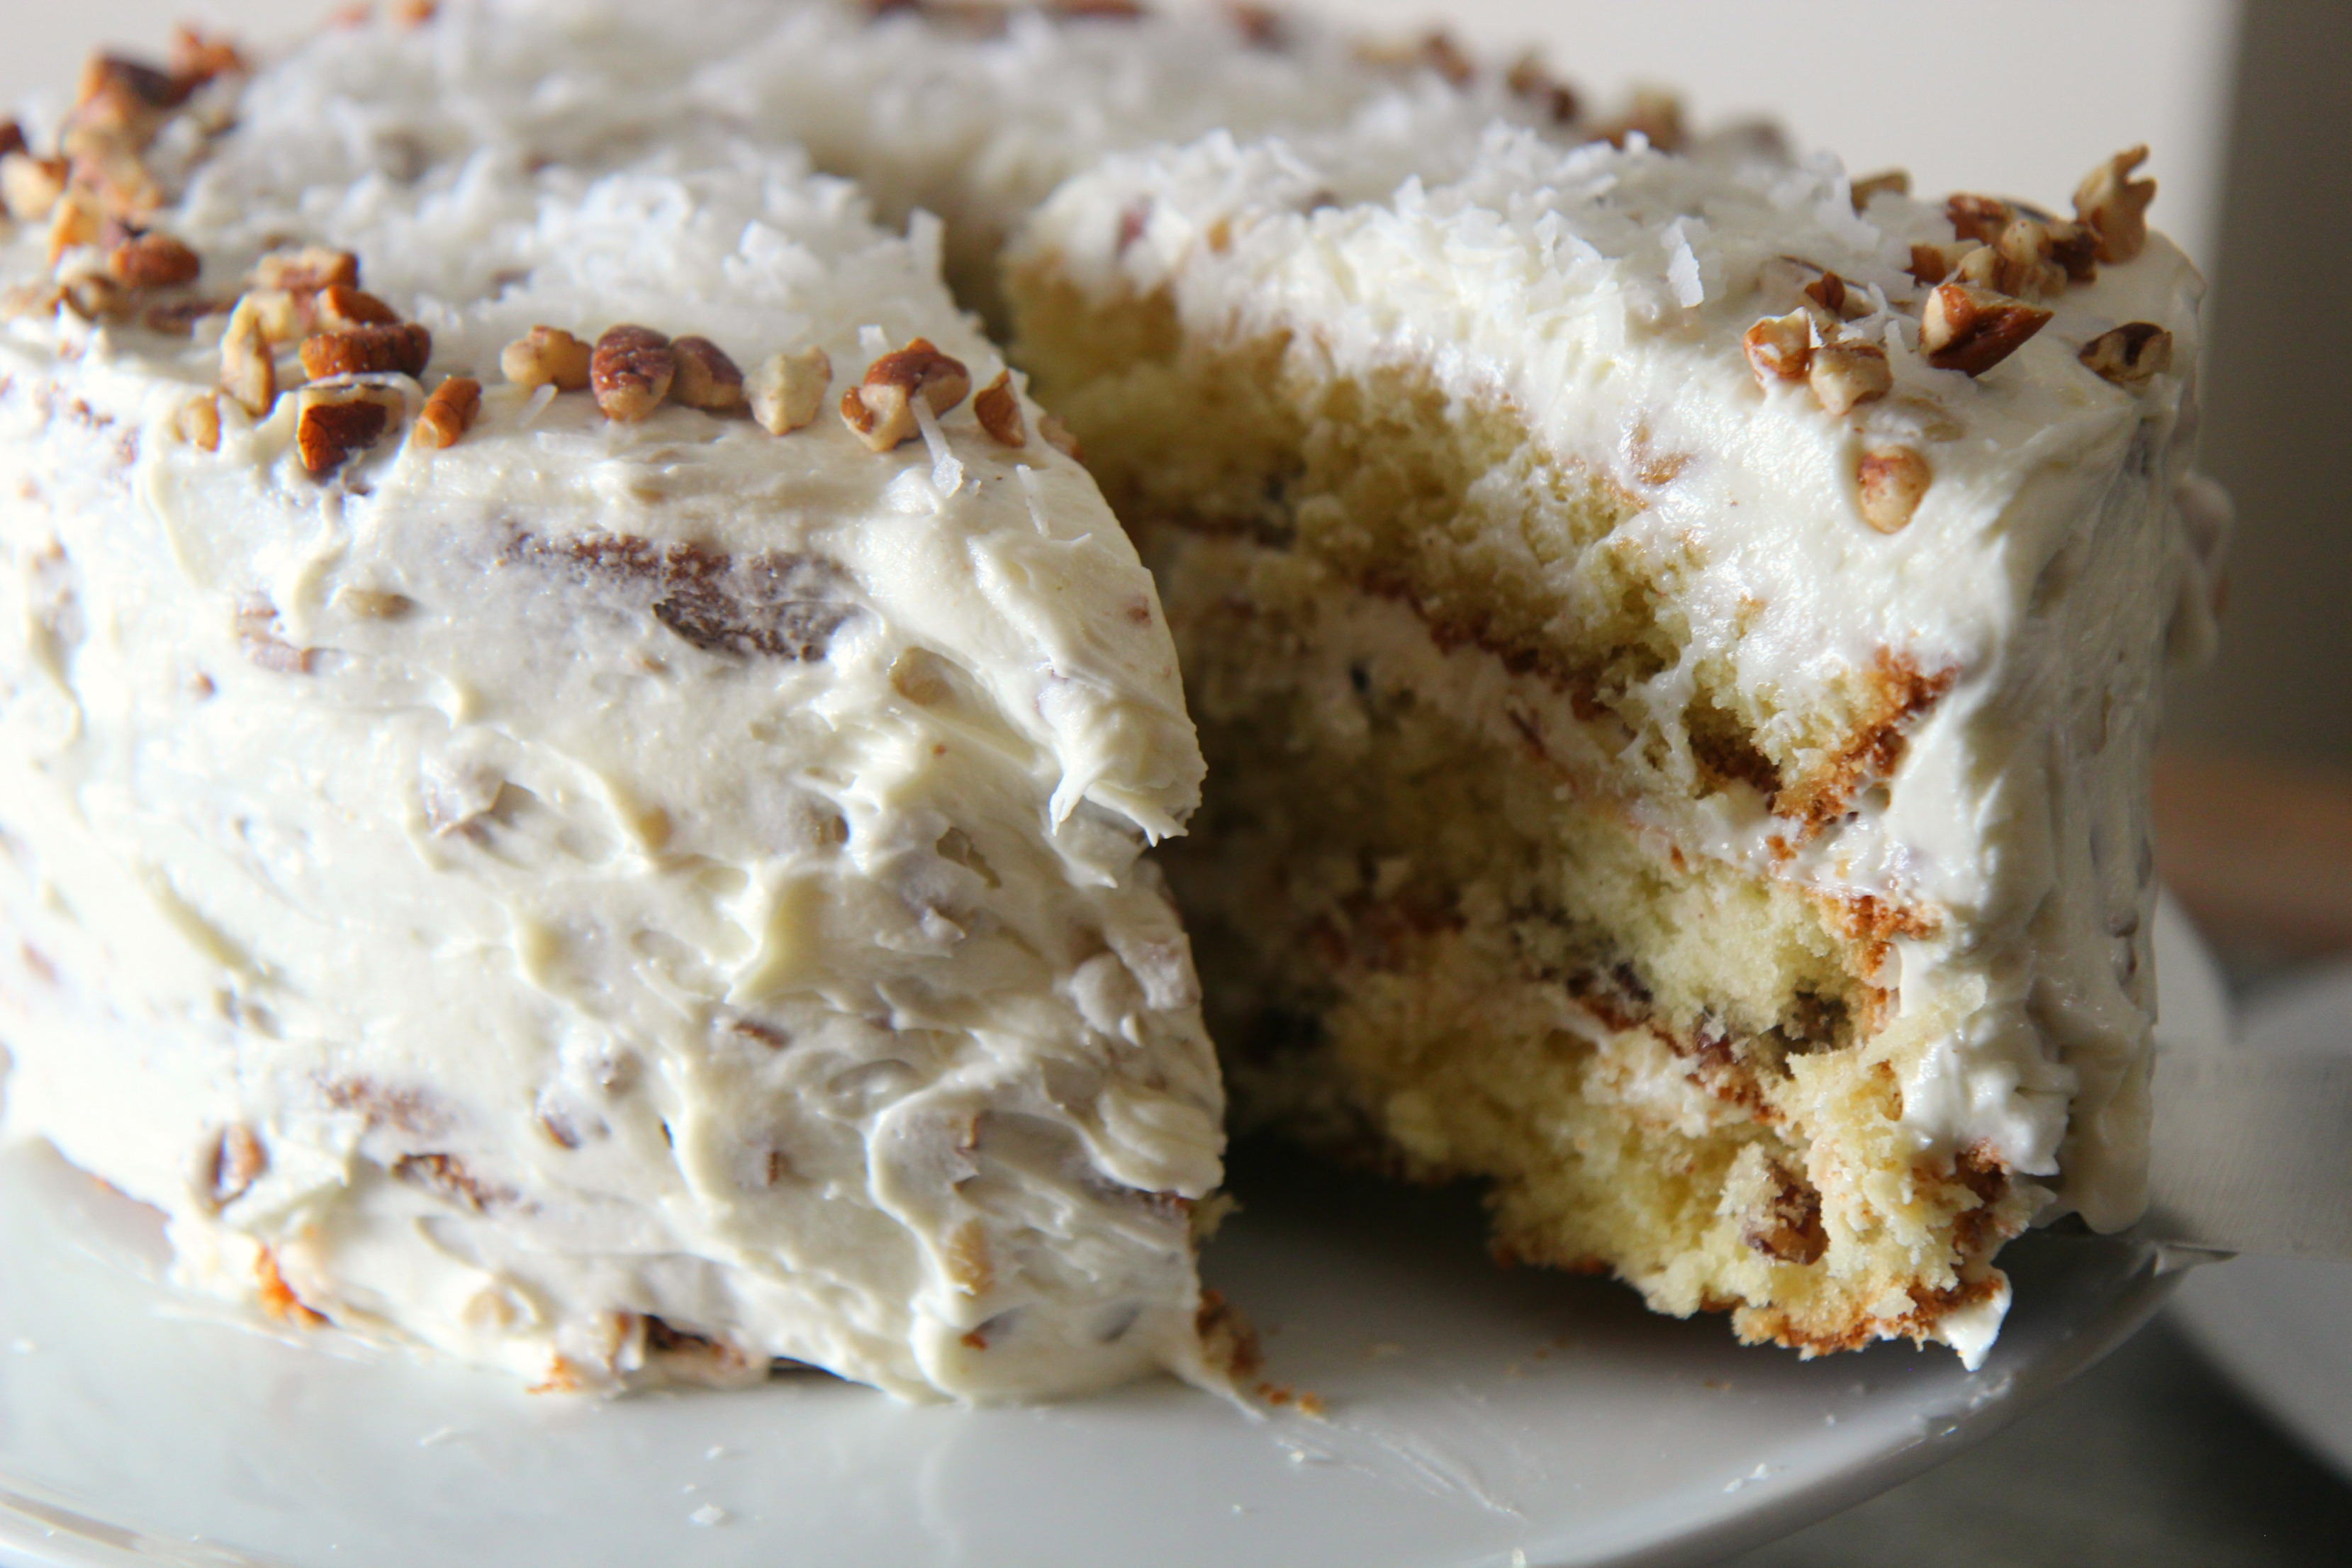 Layers of moist cake and sweet frosting.